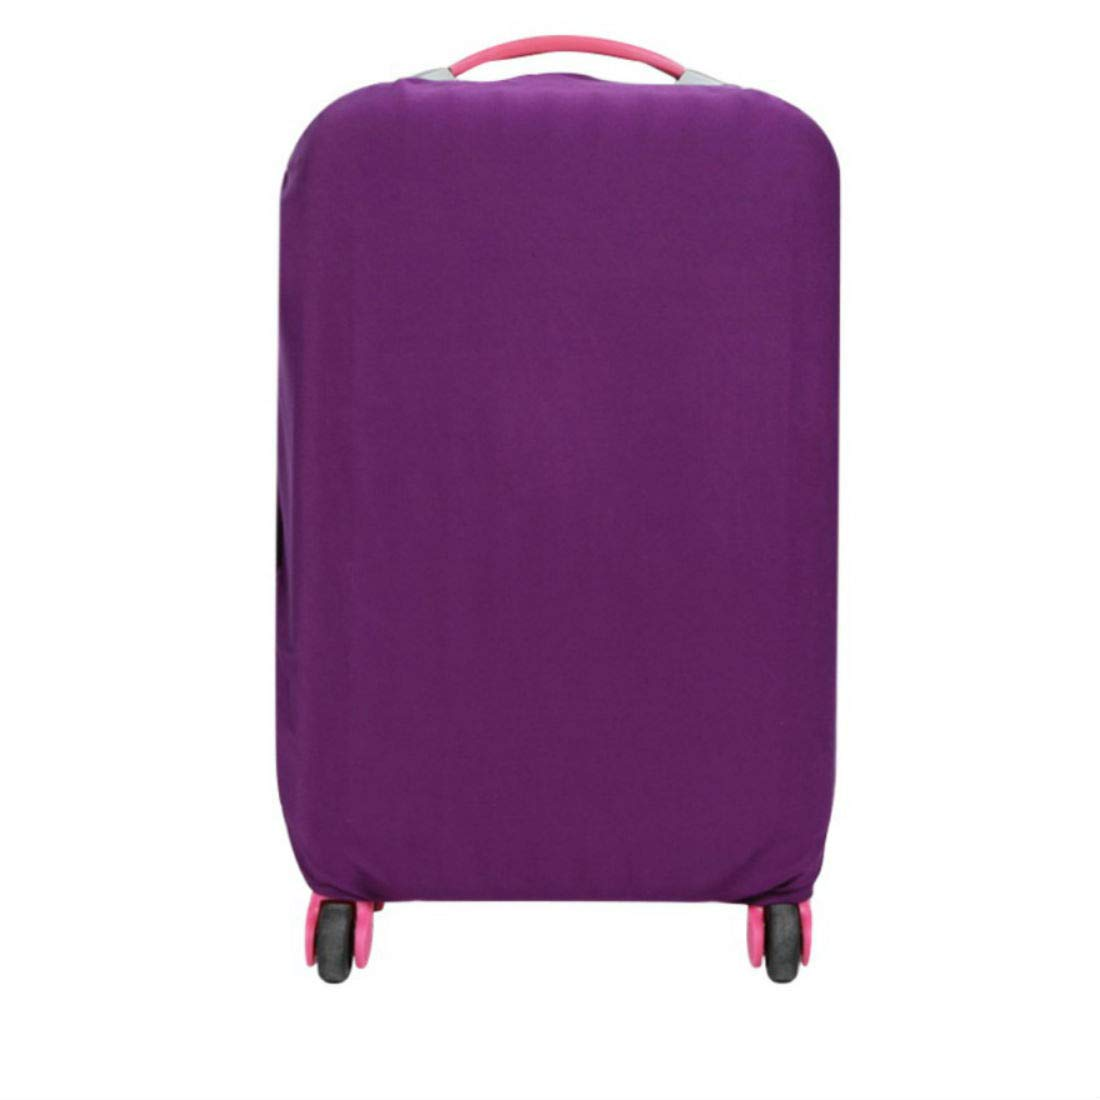 Purple US 18-26 inch Travel Luggage Suitcase Protective Dust-proof Cover Case Protector (M) by Unknown